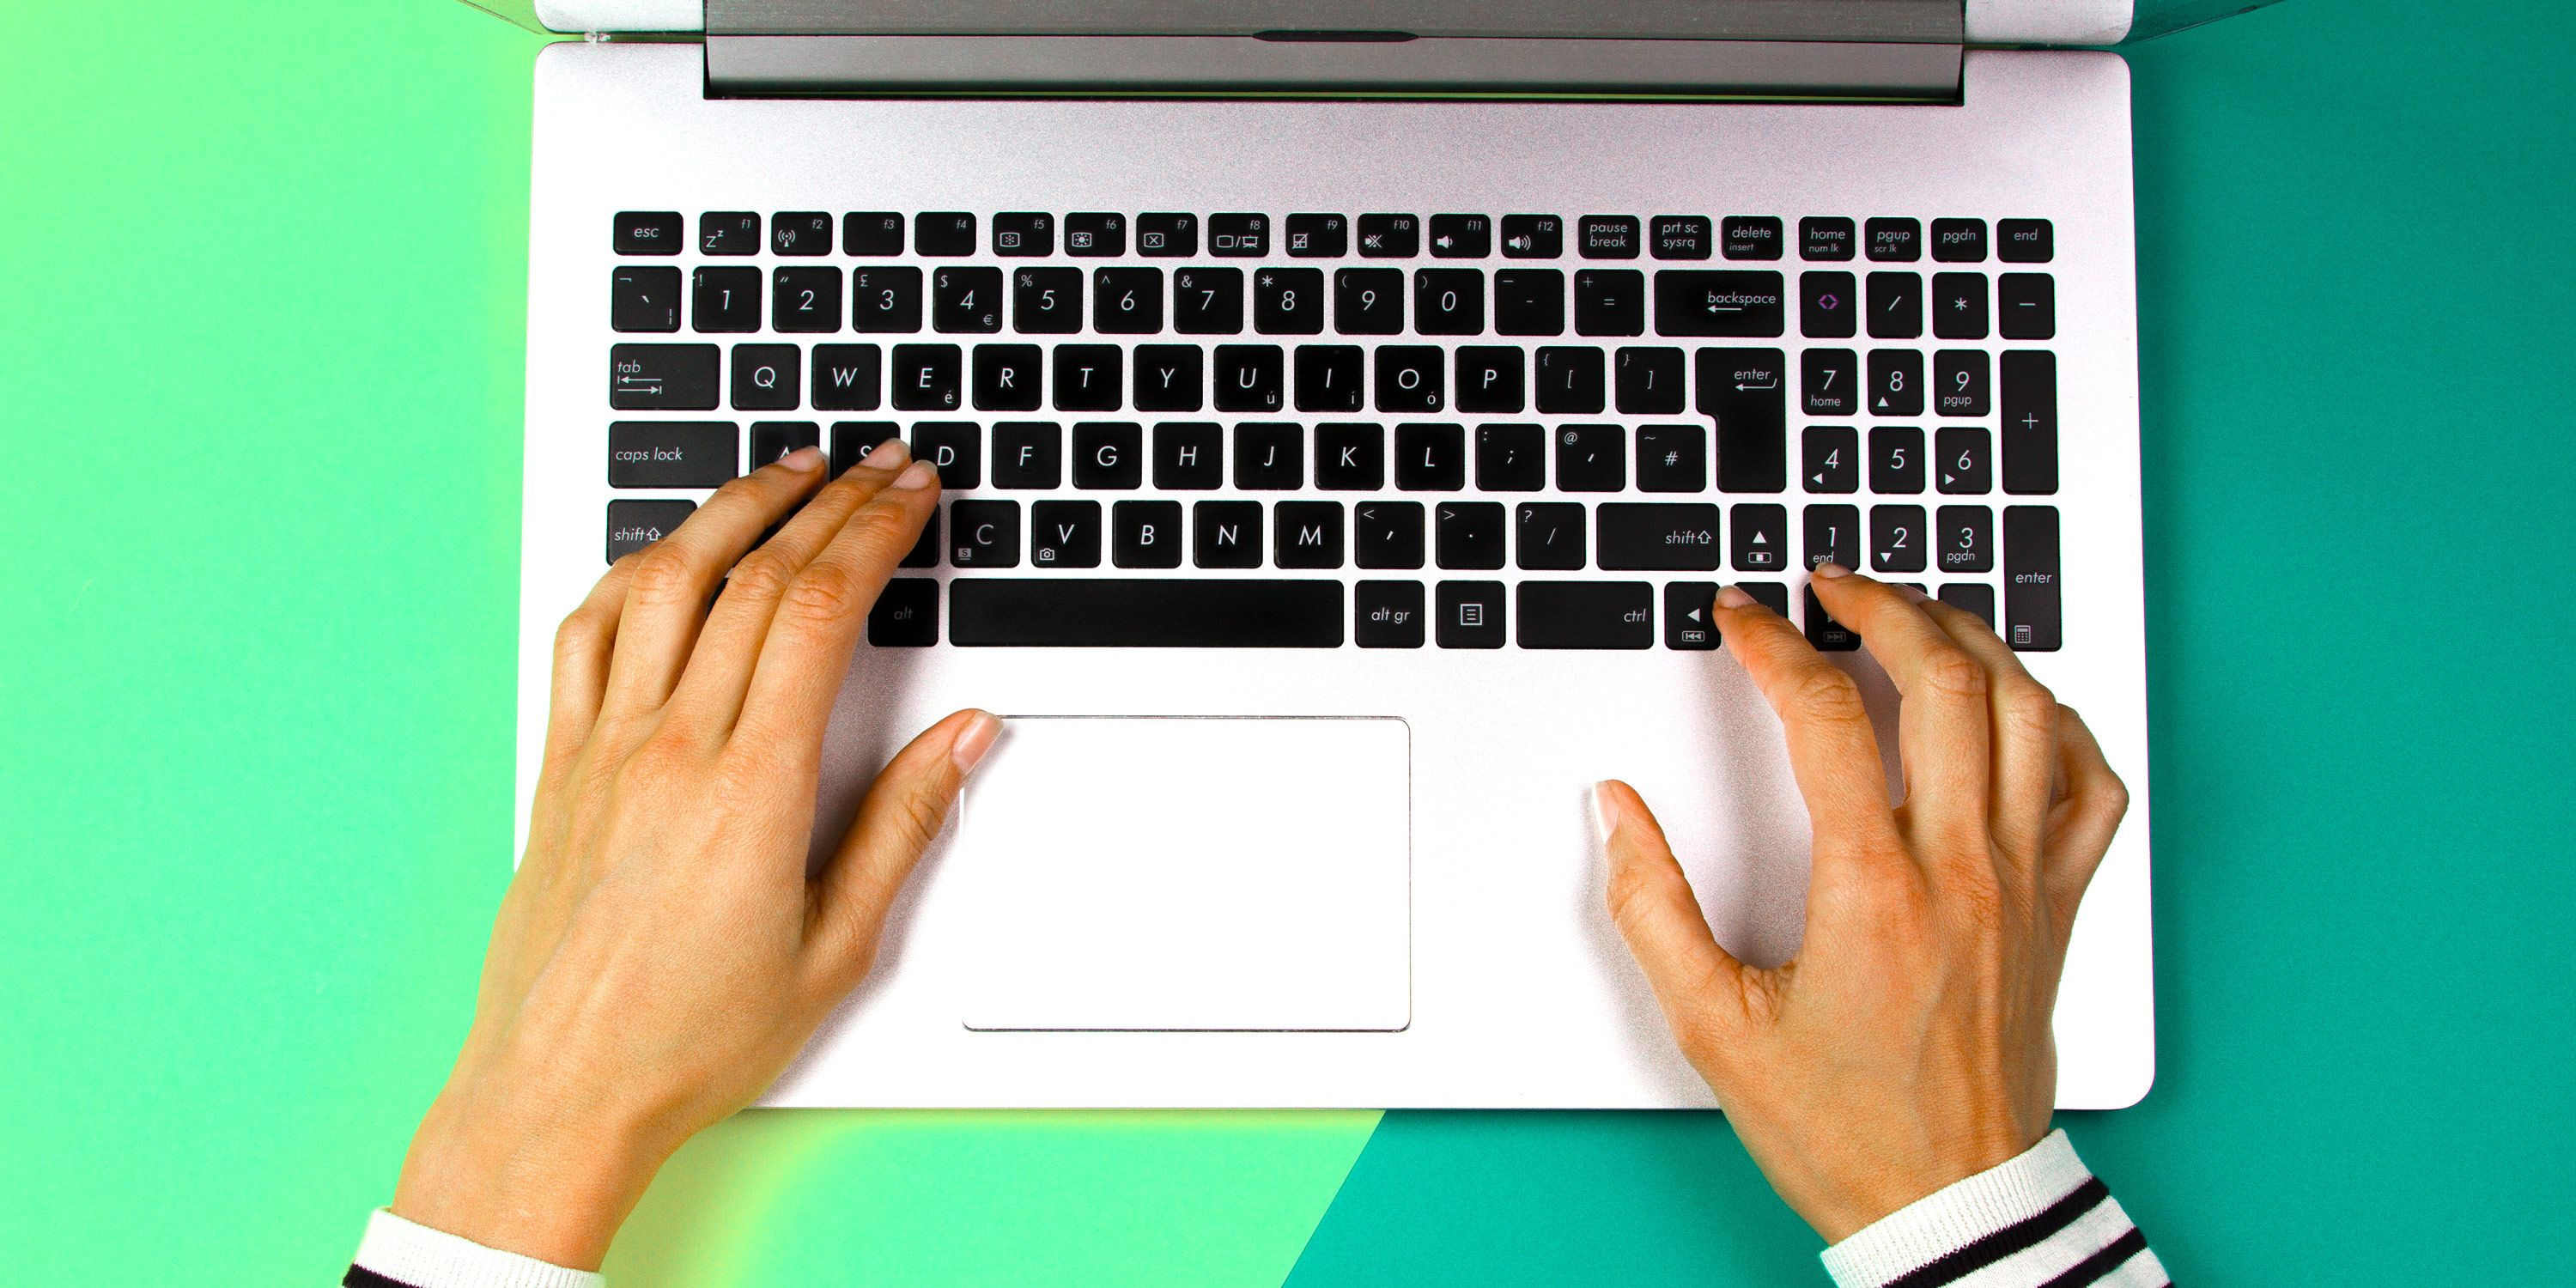 Generic stock image of a person using a laptop